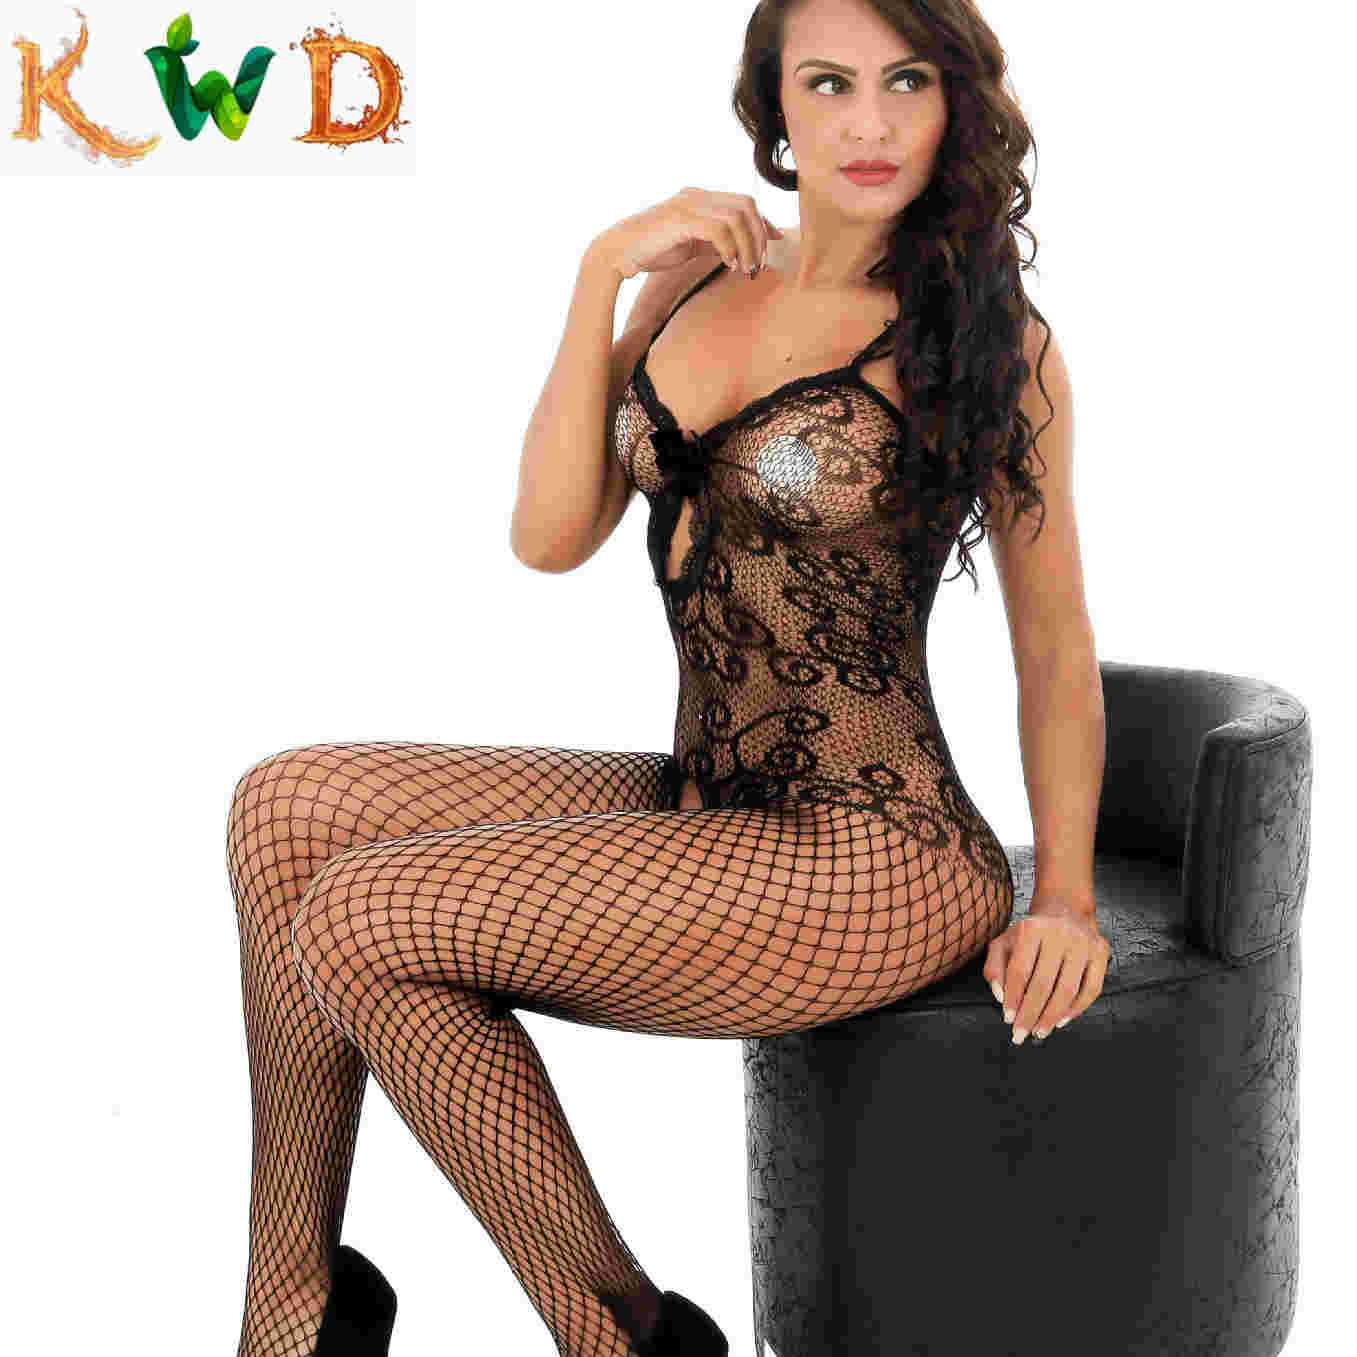 KWD Plus Size <font><b>Sexy</b></font> <font><b>Lingerie</b></font> Underwear Porn Babydoll Hot Fishnet Open Crotch Exotic <font><b>Lingerie</b></font> <font><b>Sexy</b></font> Costumes Sex Products image